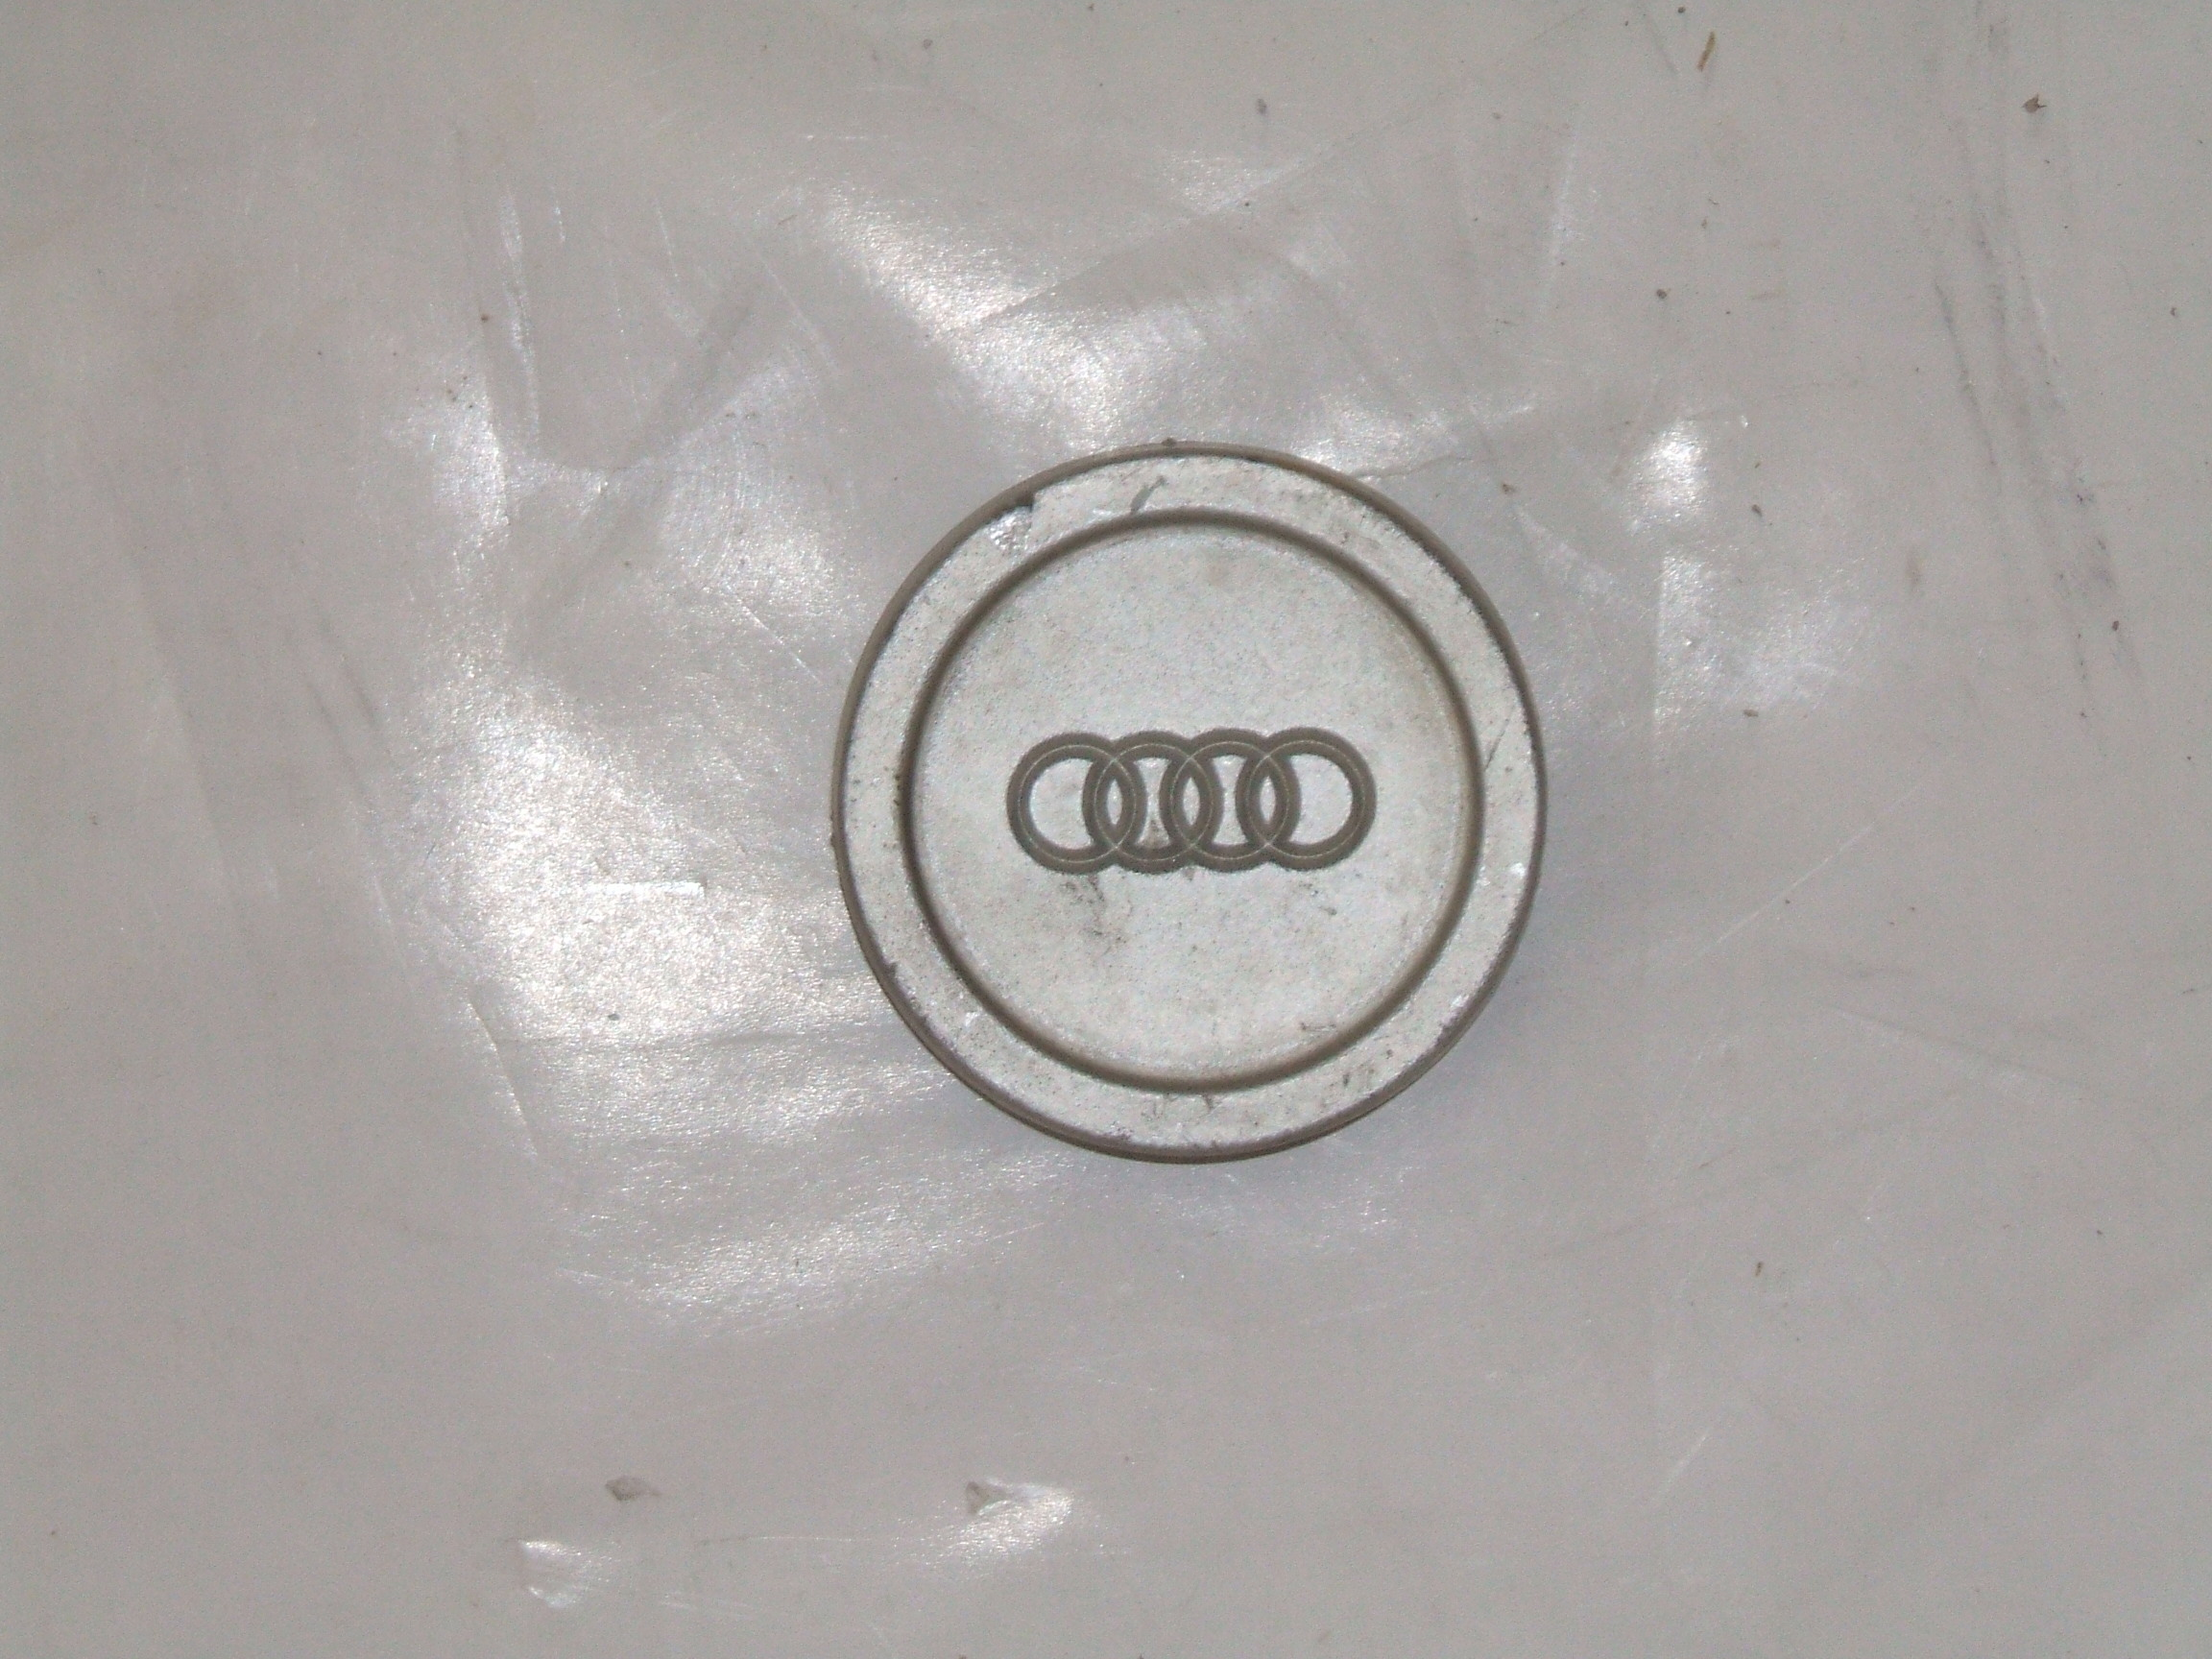 "Audi 5000 Quattro 84-87 15"" Wheel Center Cap 58640 P/N HBZ811601165"